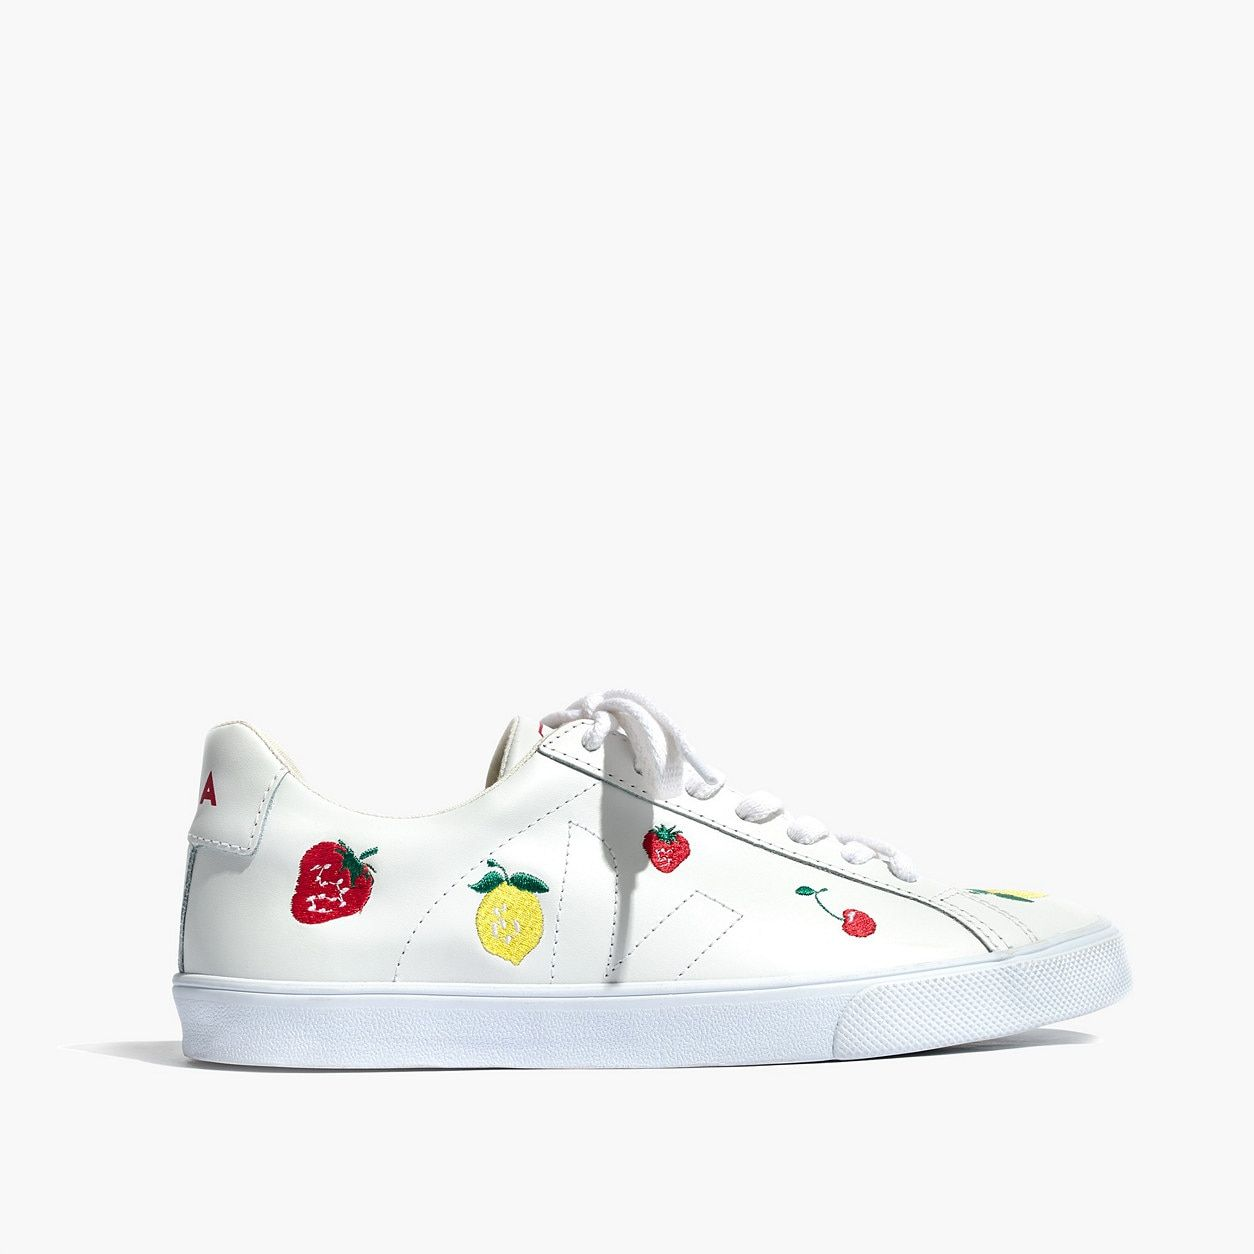 55b85d50bff Madewell x Veja™ Fruit Embroidered Sneakers Esplar Low Sneakers    Madewell Shop By Category